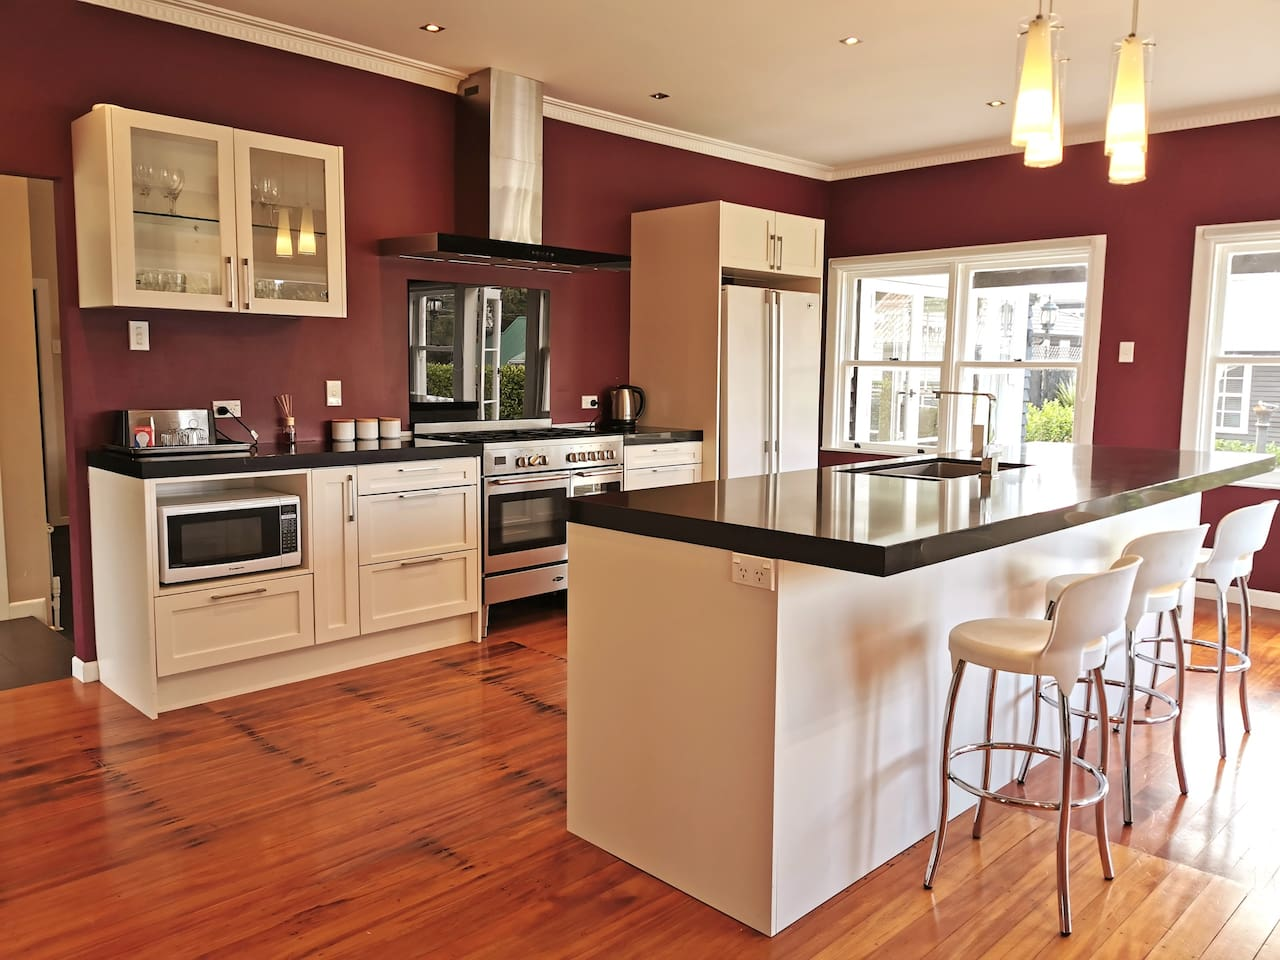 Kitchen - the hub of activity happens here